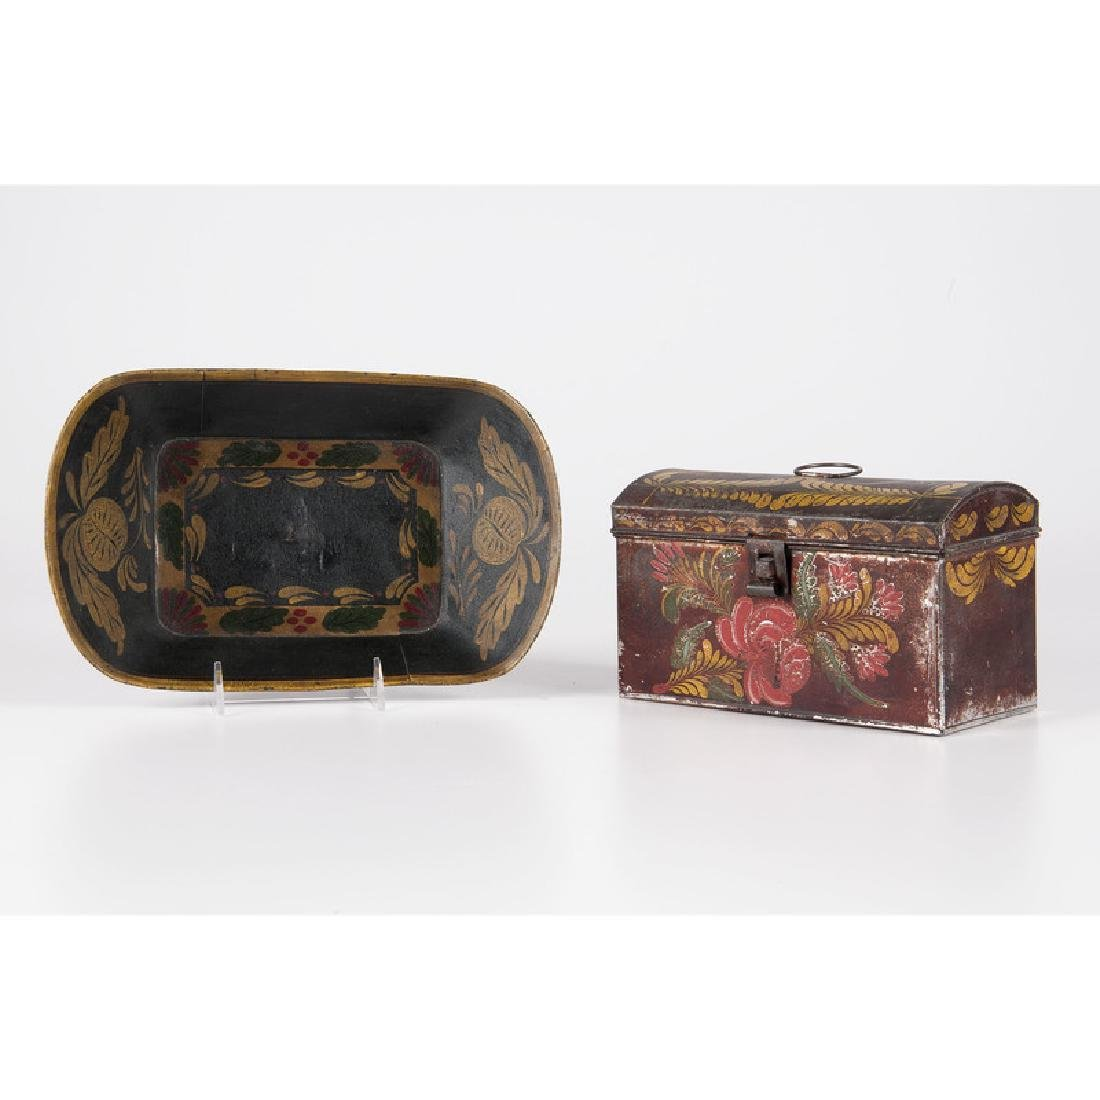 Tole Painted Tray and Box